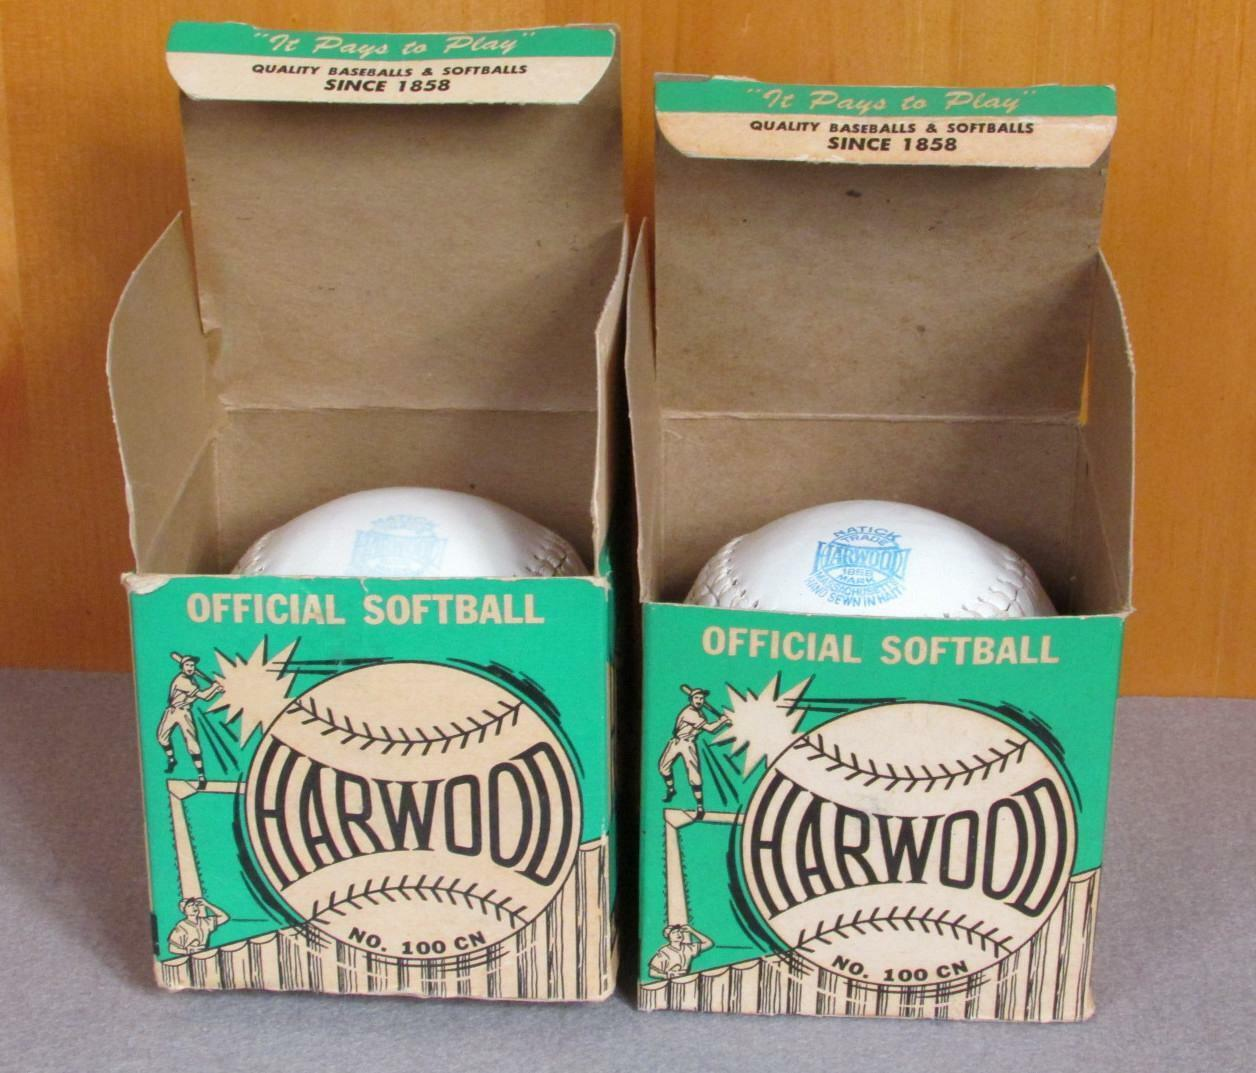 Vintage Harwood & Sons Leder Offiziell Softball Paar 12